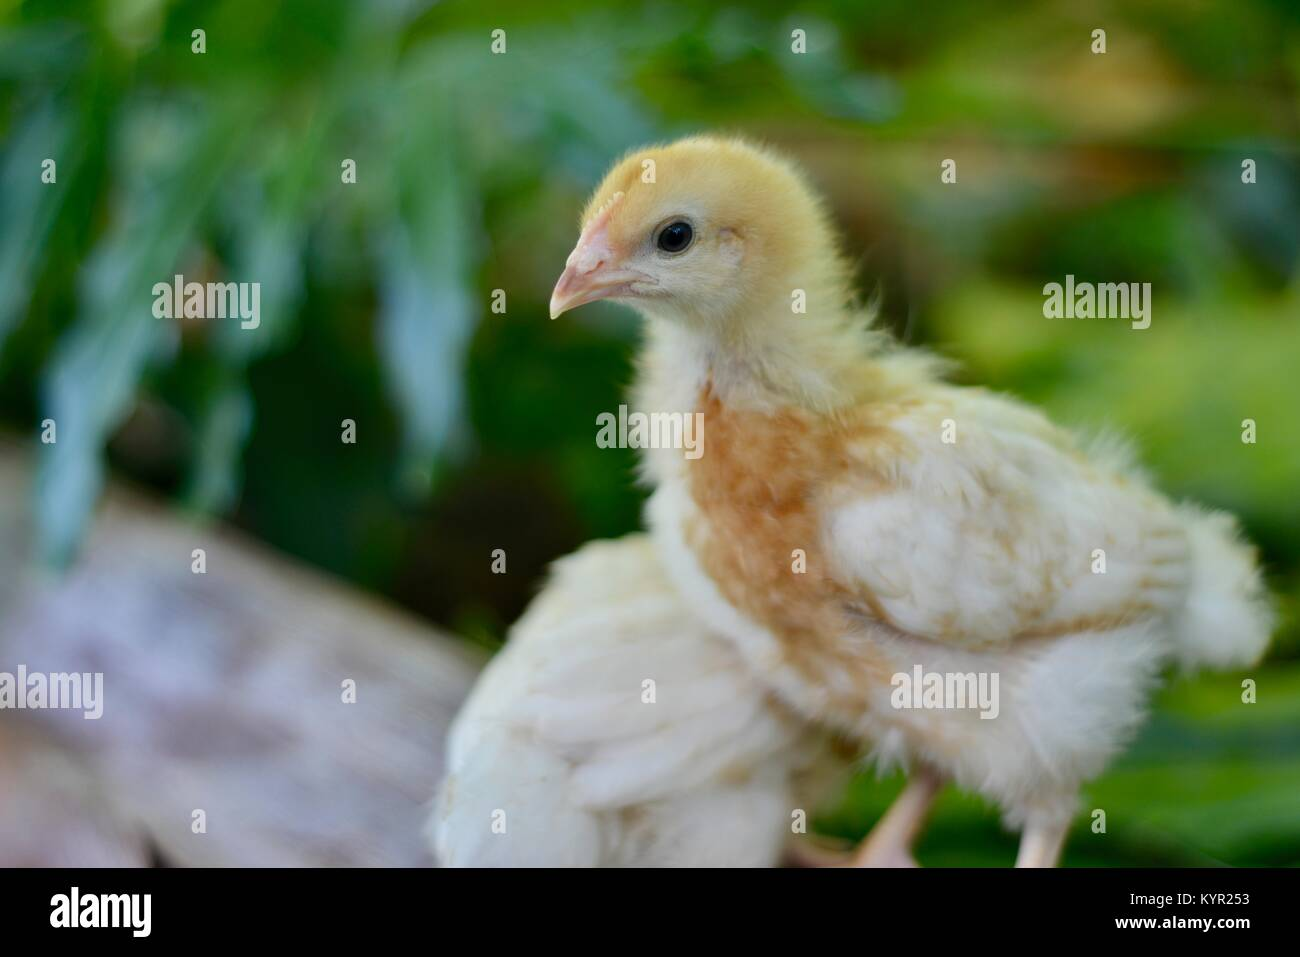 One week old domestic free range chicks, Rhode Island Red Breed, in a natural setting, Townsville, Queensland, Australia - Stock Image